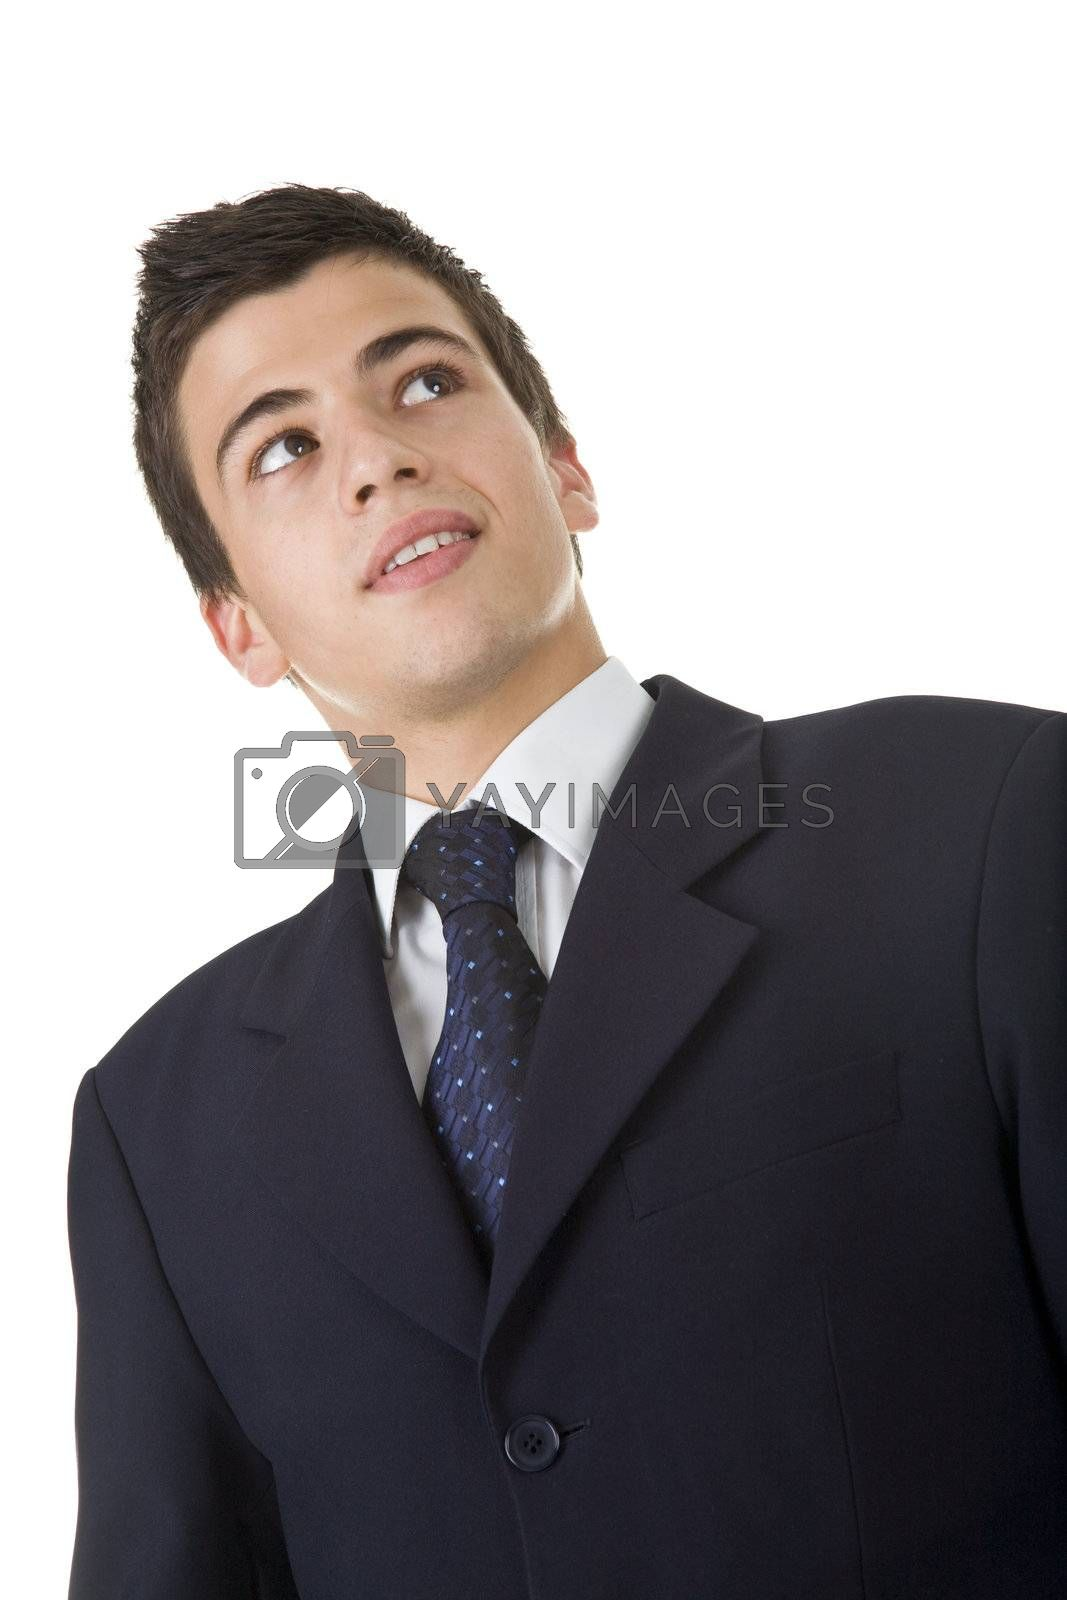 Portrait of a handsome young man, wearing a suit. Isolated on white. Studio shot.